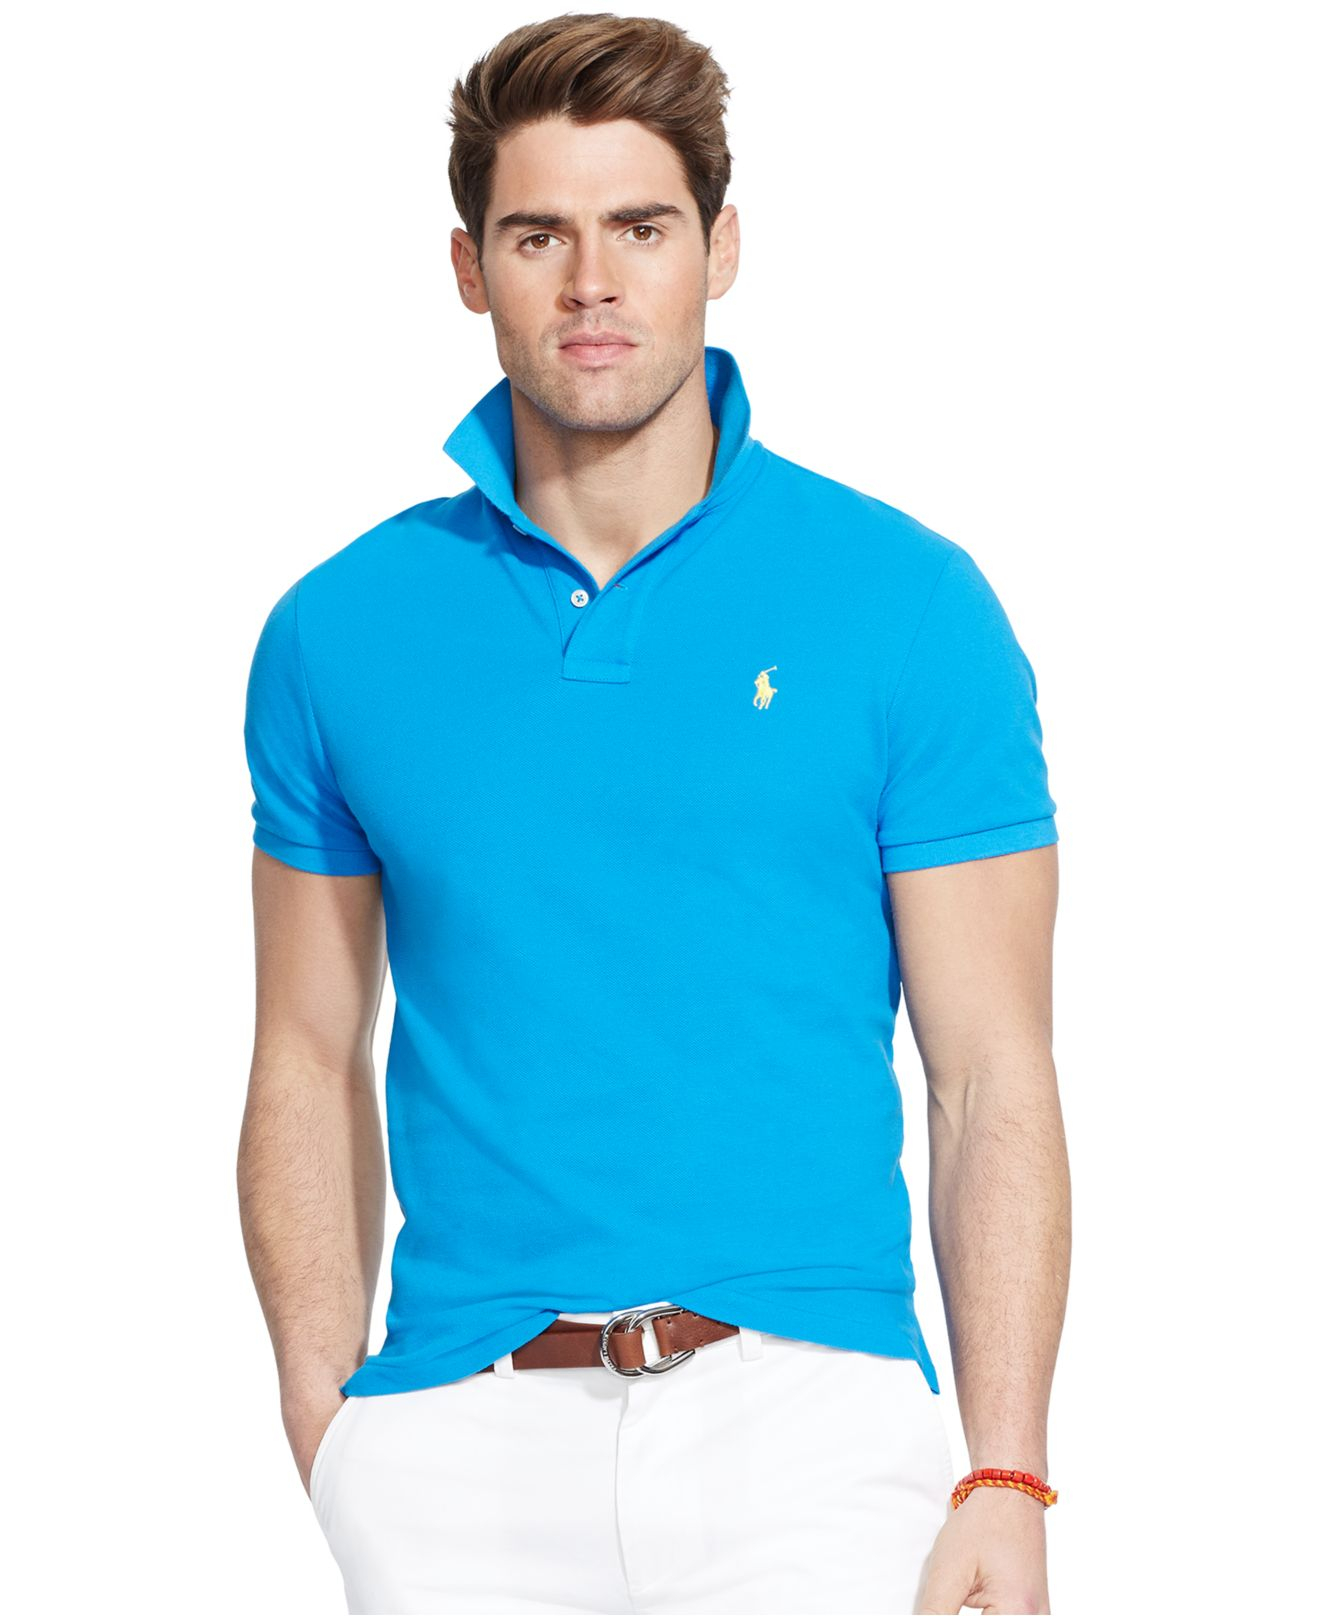 ae96134b Polo Ralph Lauren Custom-fit Mesh Polo Shirt in Blue for Men - Lyst